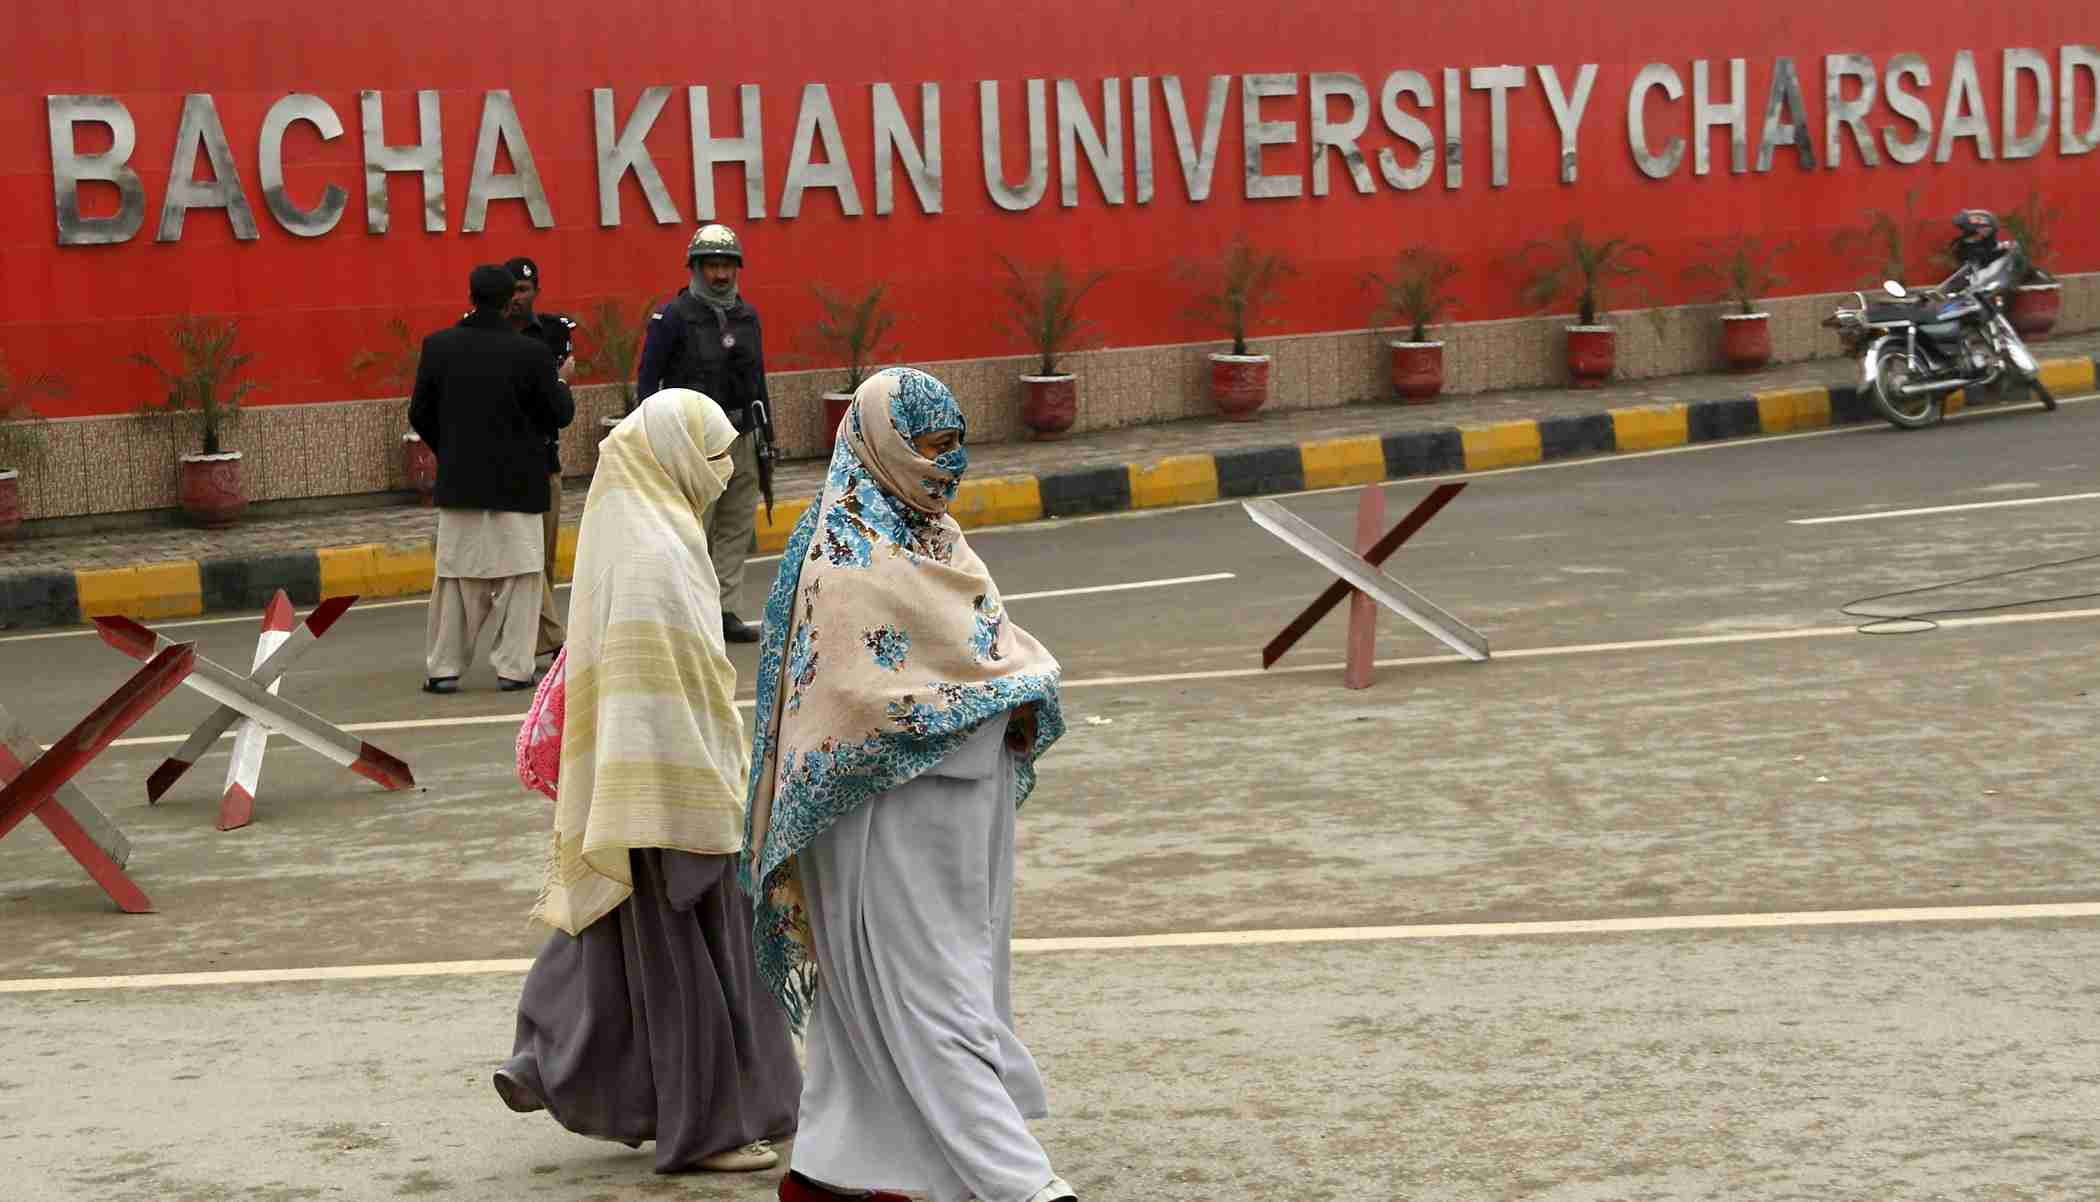 Students leave their campus at Bacha Khan University in Charsadda, Pakistan January 25, 2016. REUTERS/Khuram Parvez - GF20000106219